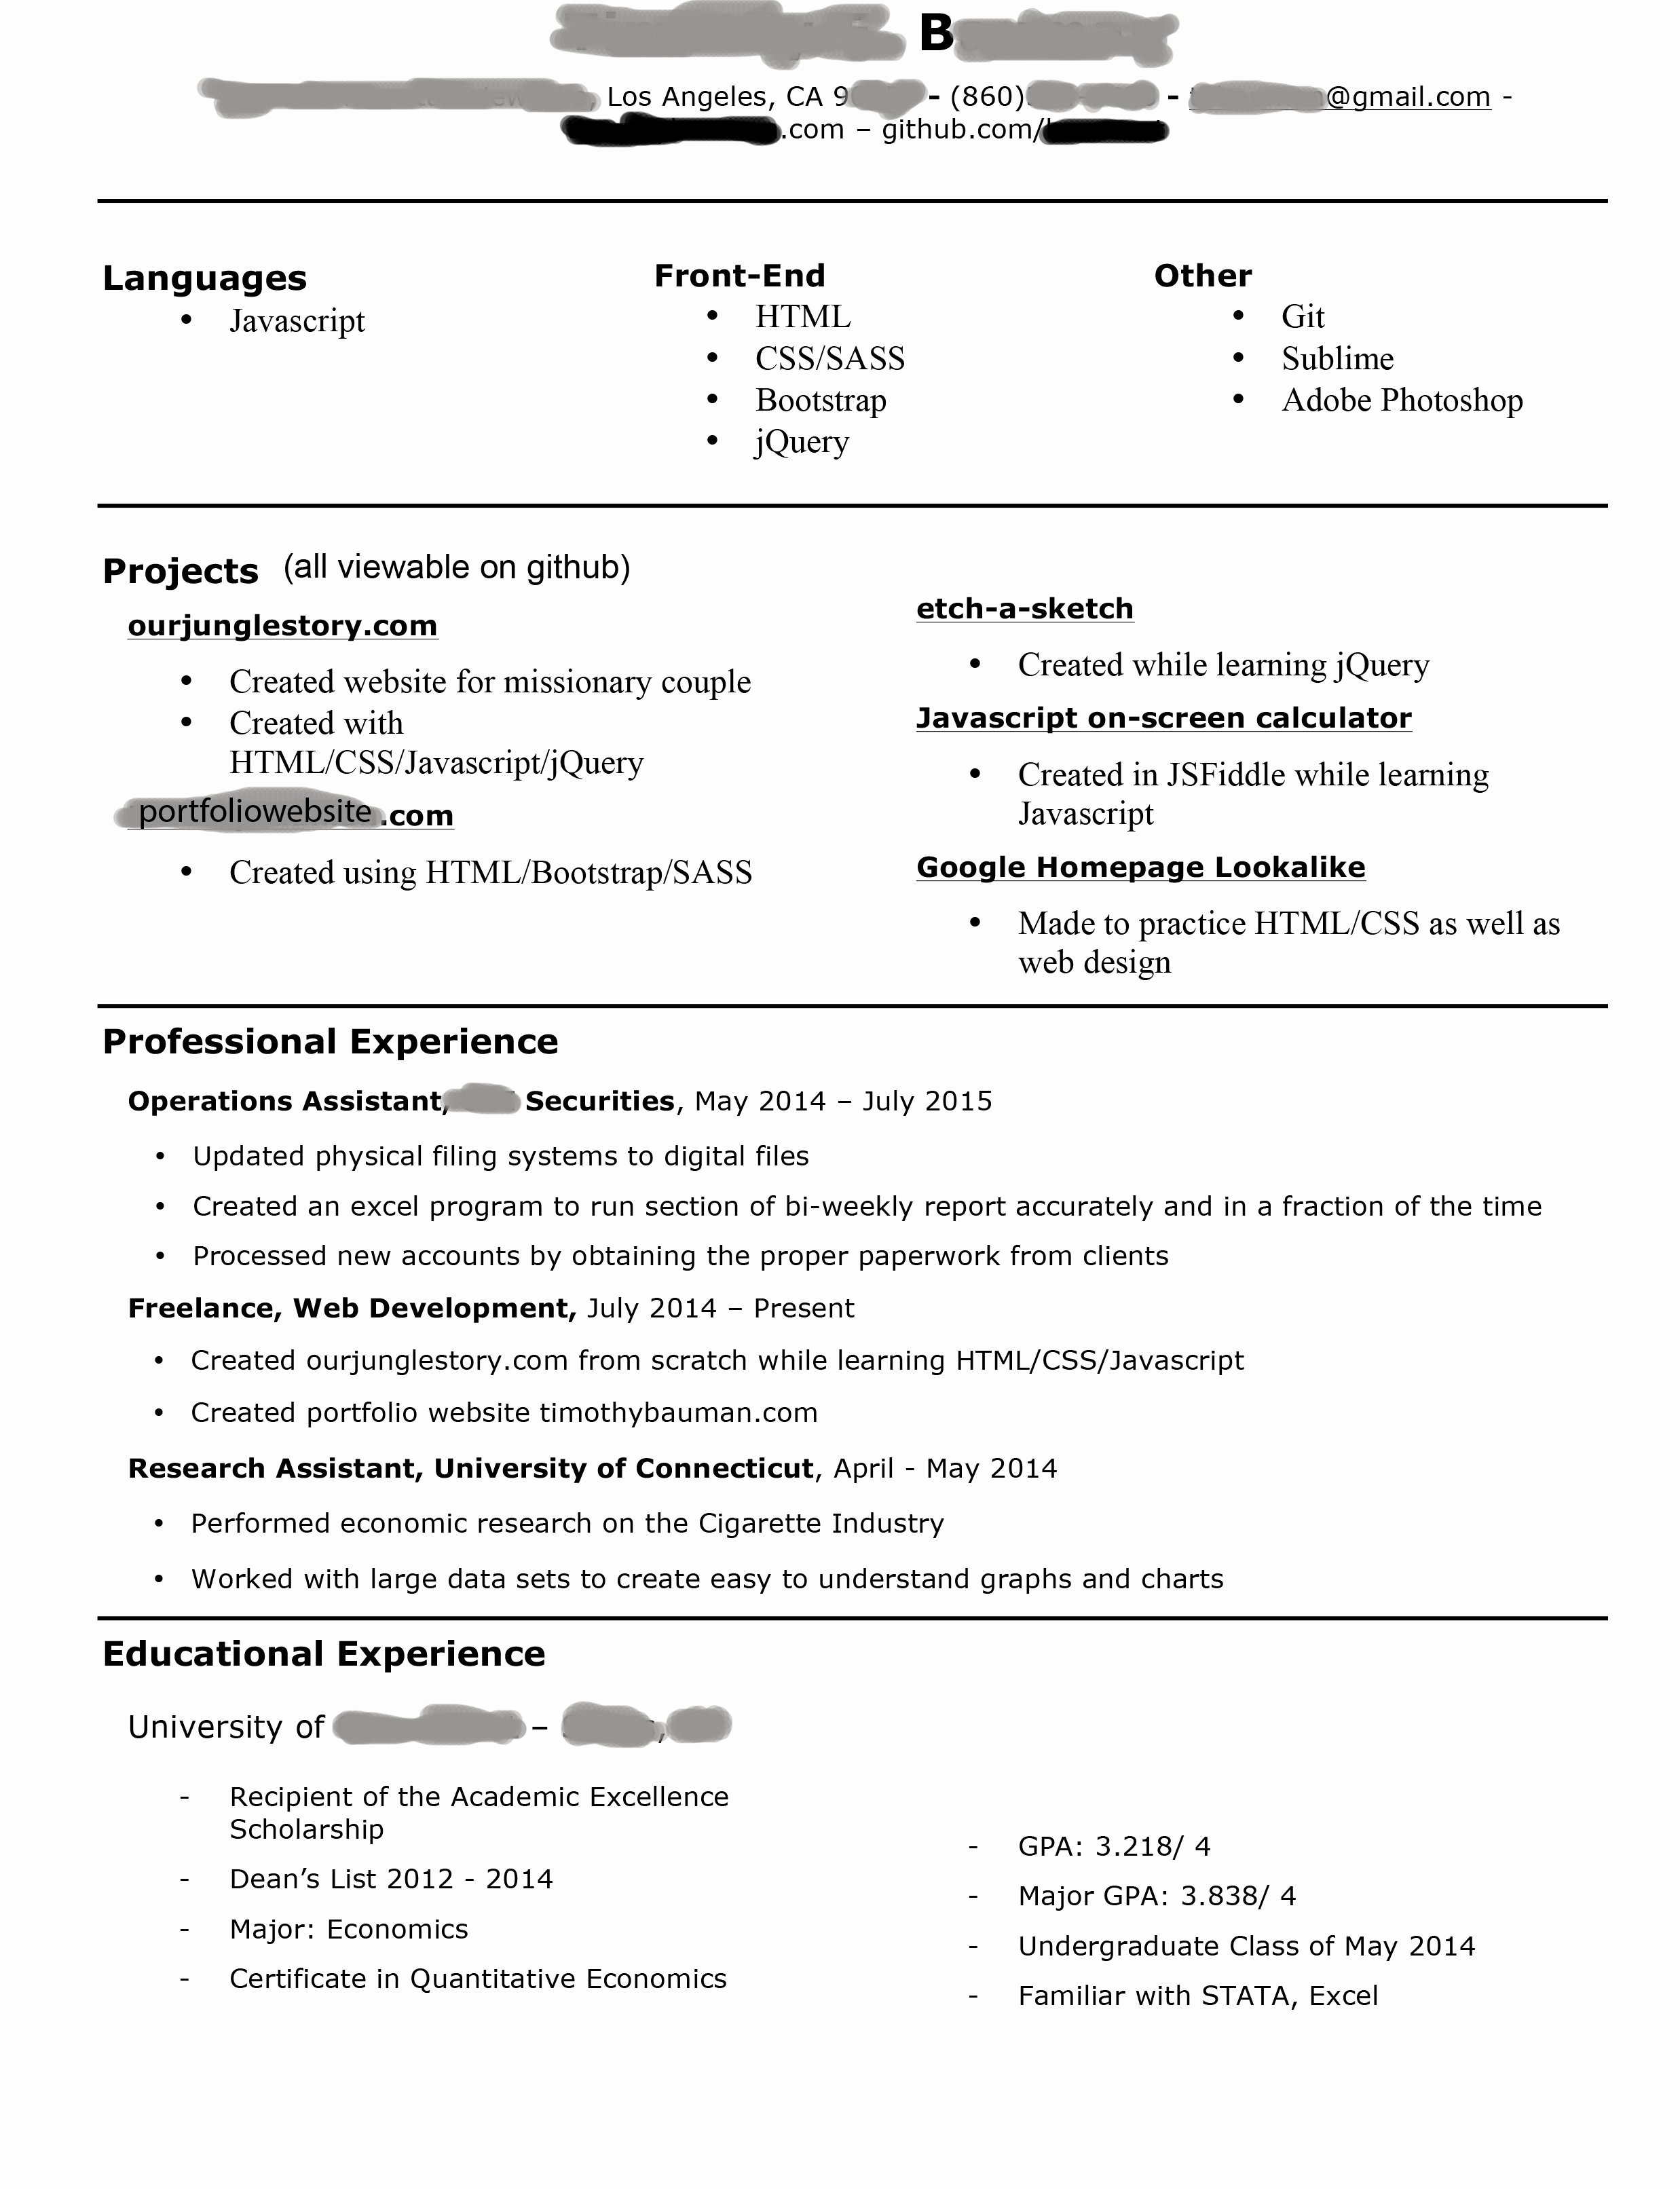 Starting to Look for Jobs as A Jr Front End Web Developer